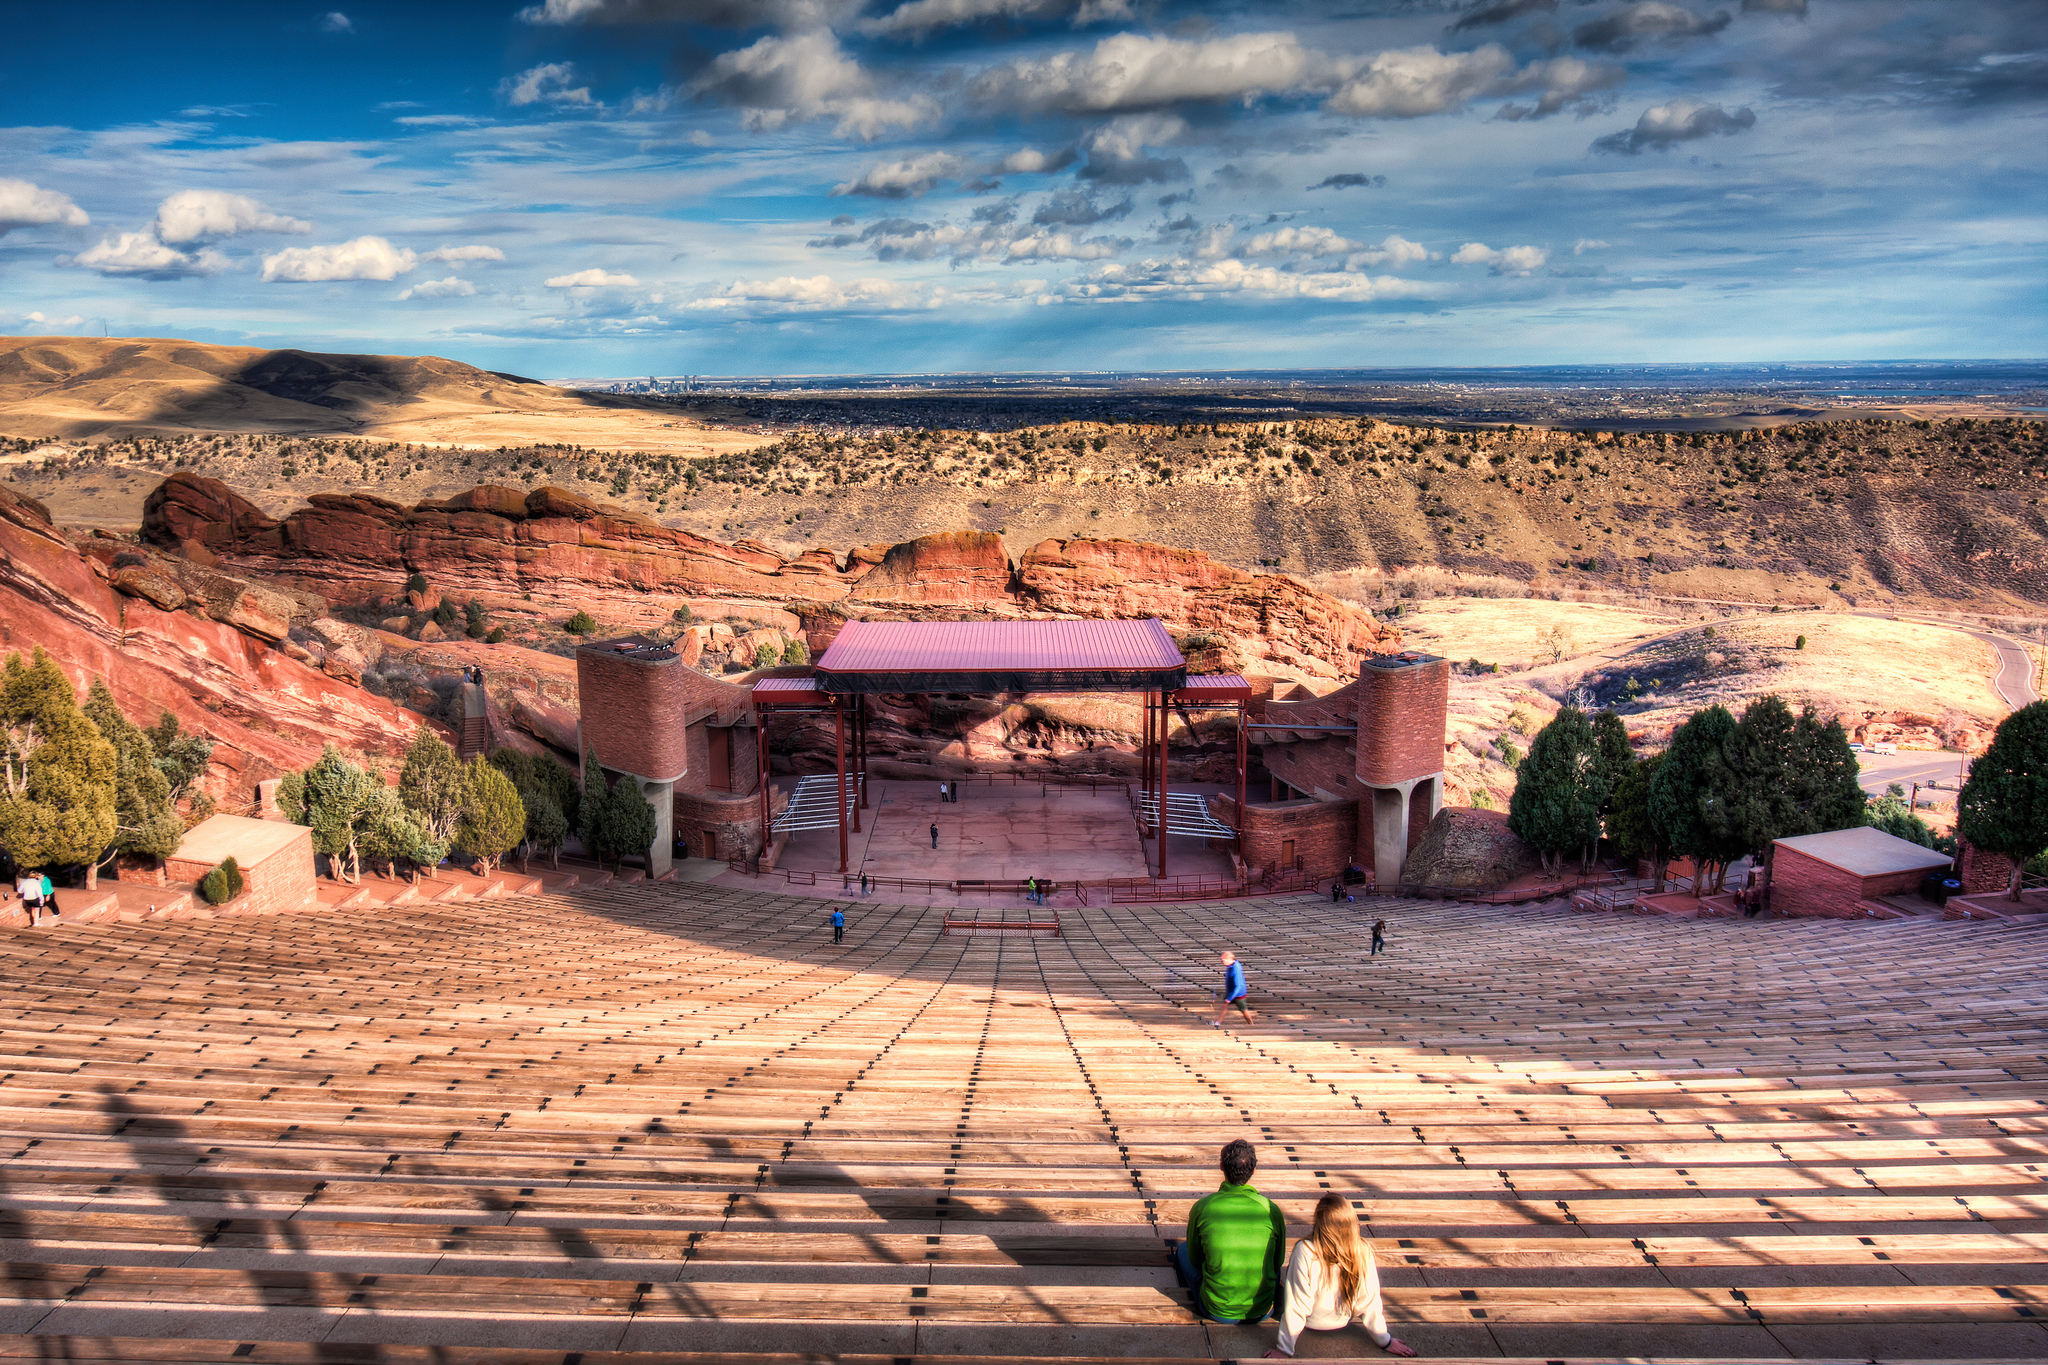 red rock Get directions, maps, and traffic for red rock, az check flight prices and hotel availability for your visit.